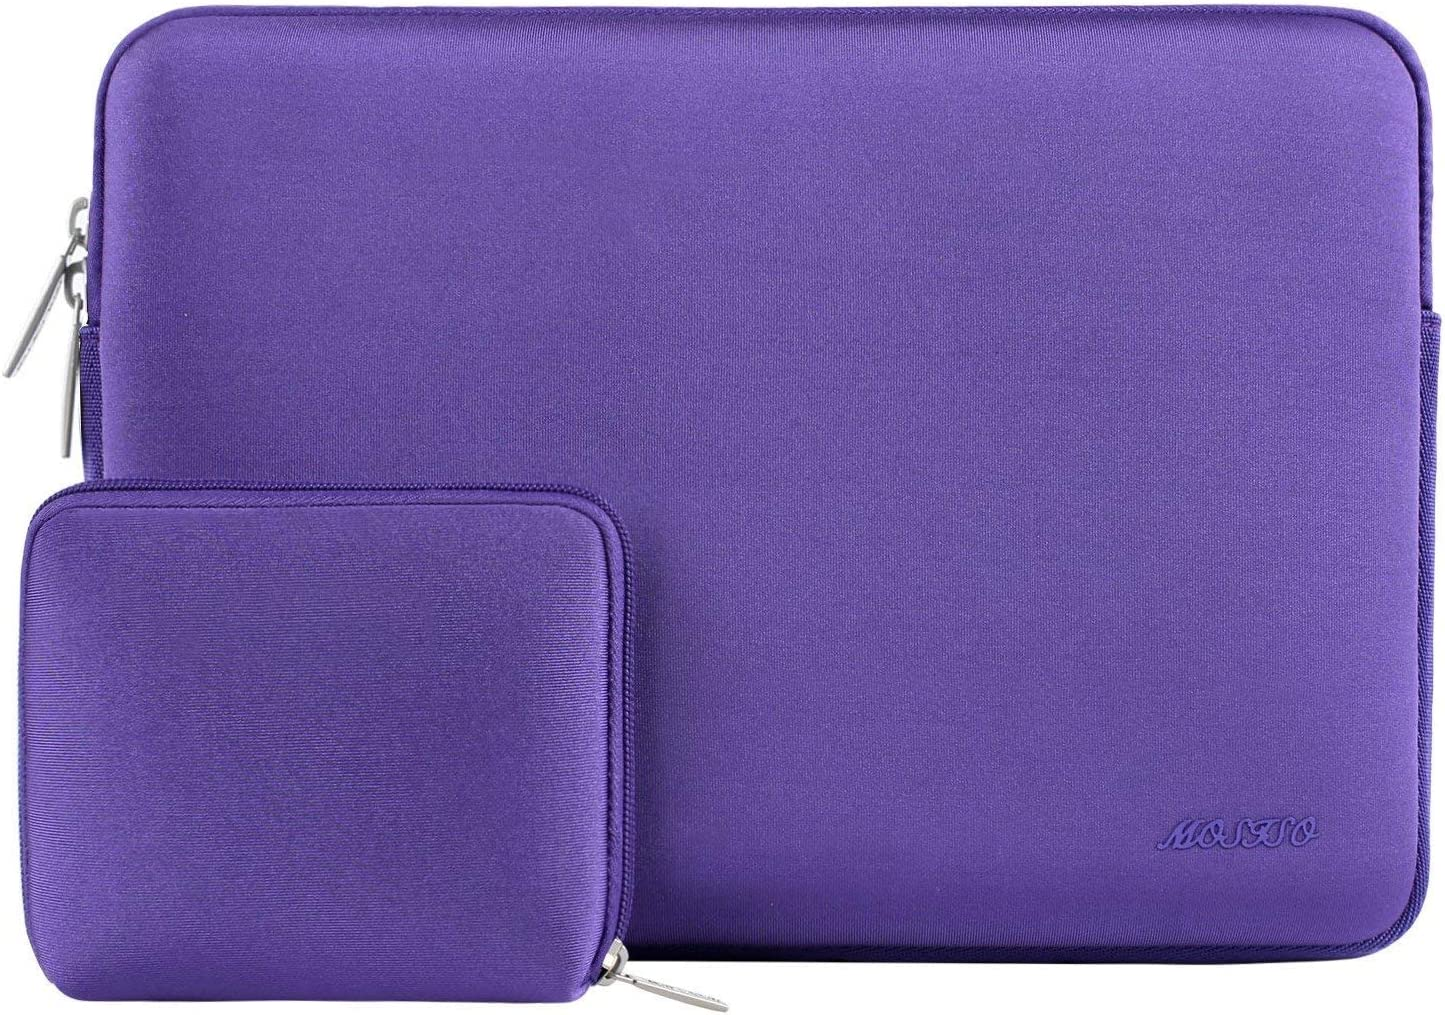 MOSISO Laptop Sleeve Compatible with 13-13.3 inch MacBook Pro, MacBook Air, Notebook Computer, Water Repellent Neoprene Bag with Small Case, Ultra Violet